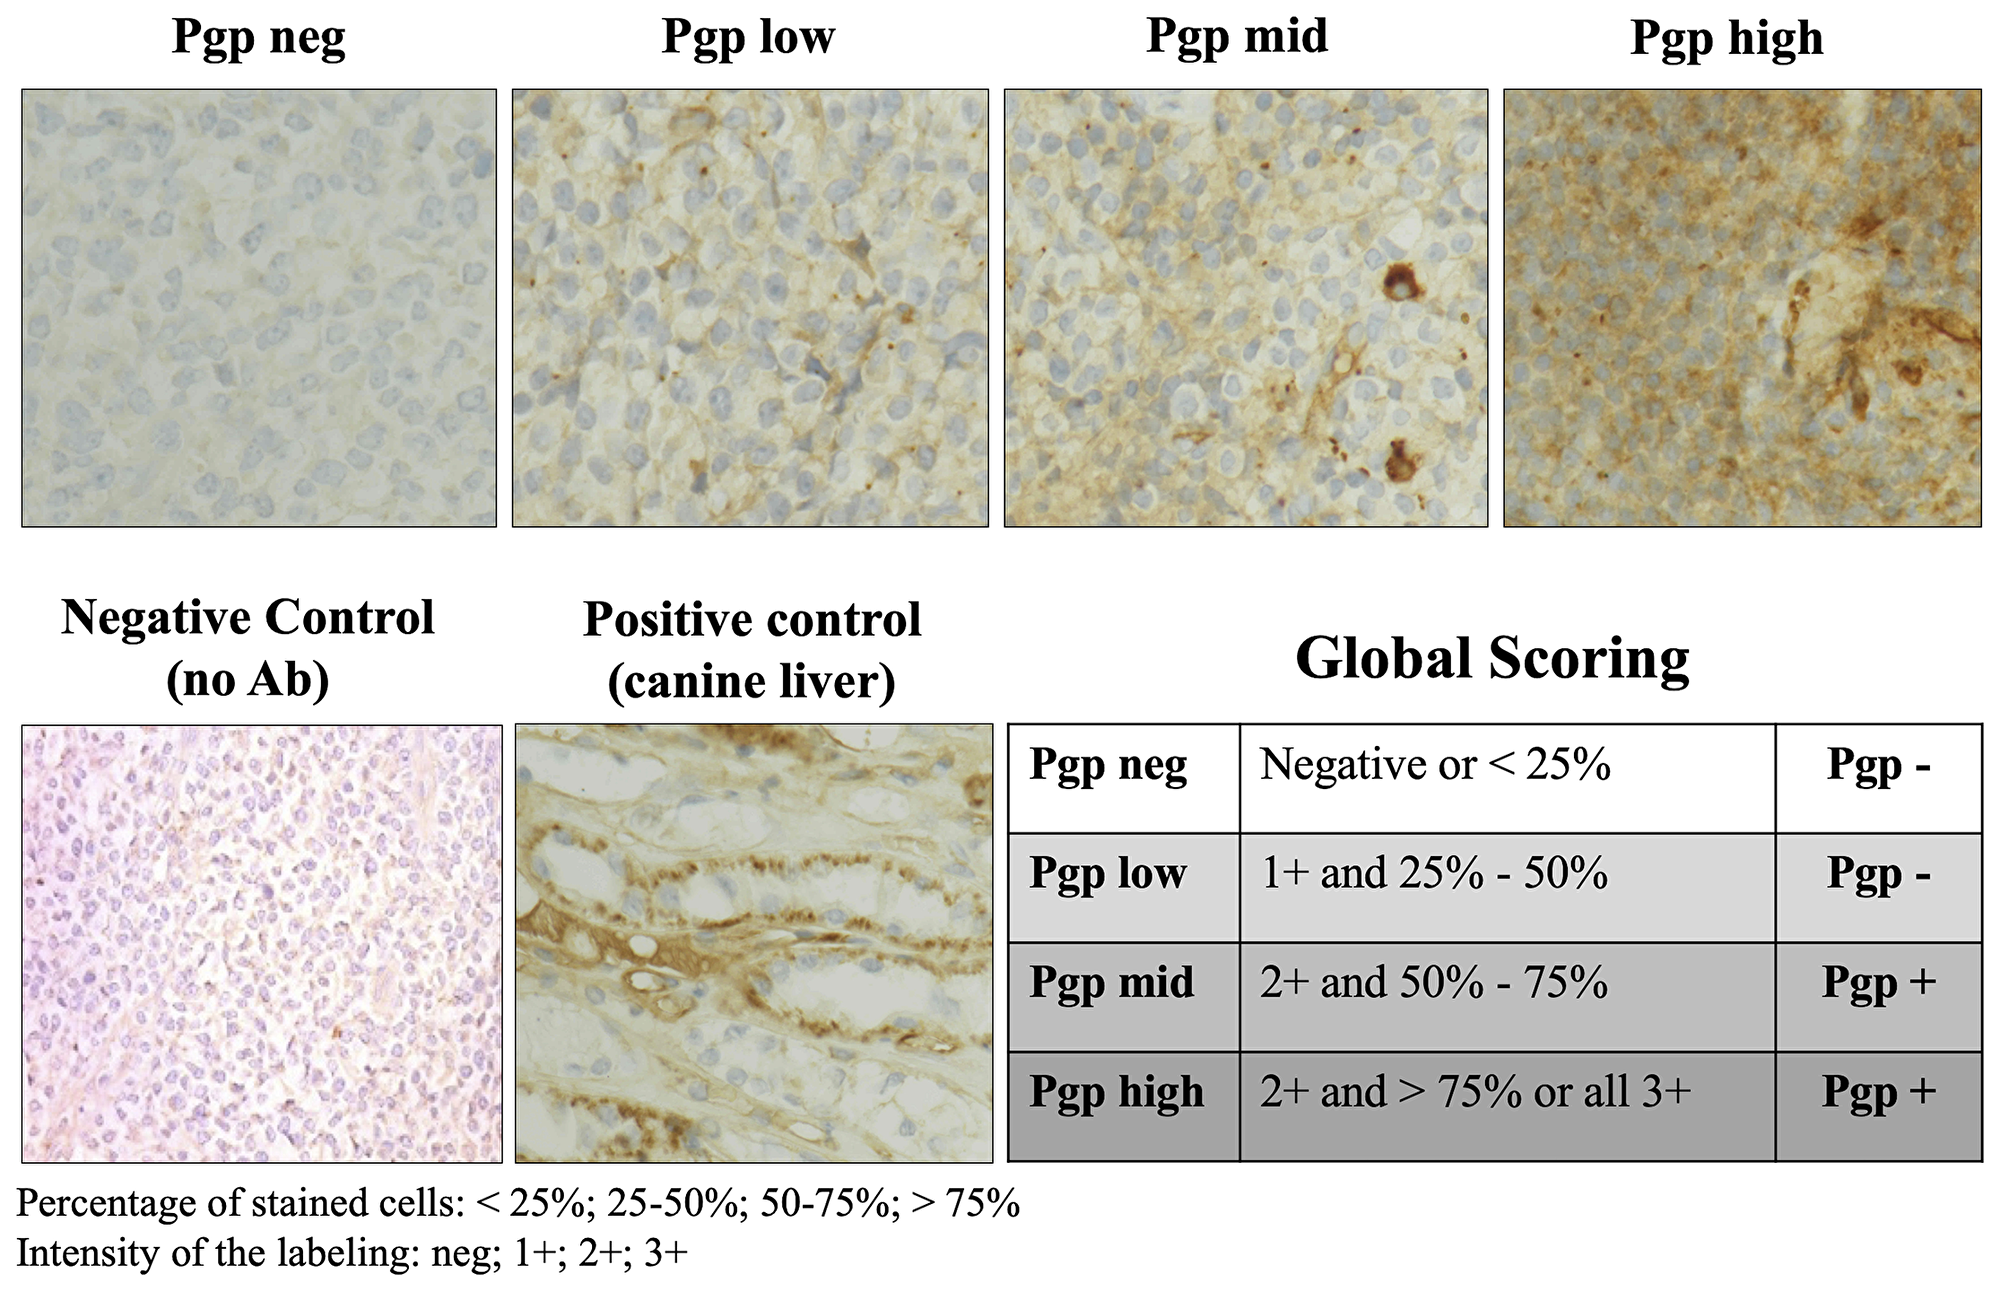 P-glycoprotein expression evaluated by immunohistochemistry in lymph node tumor cells.